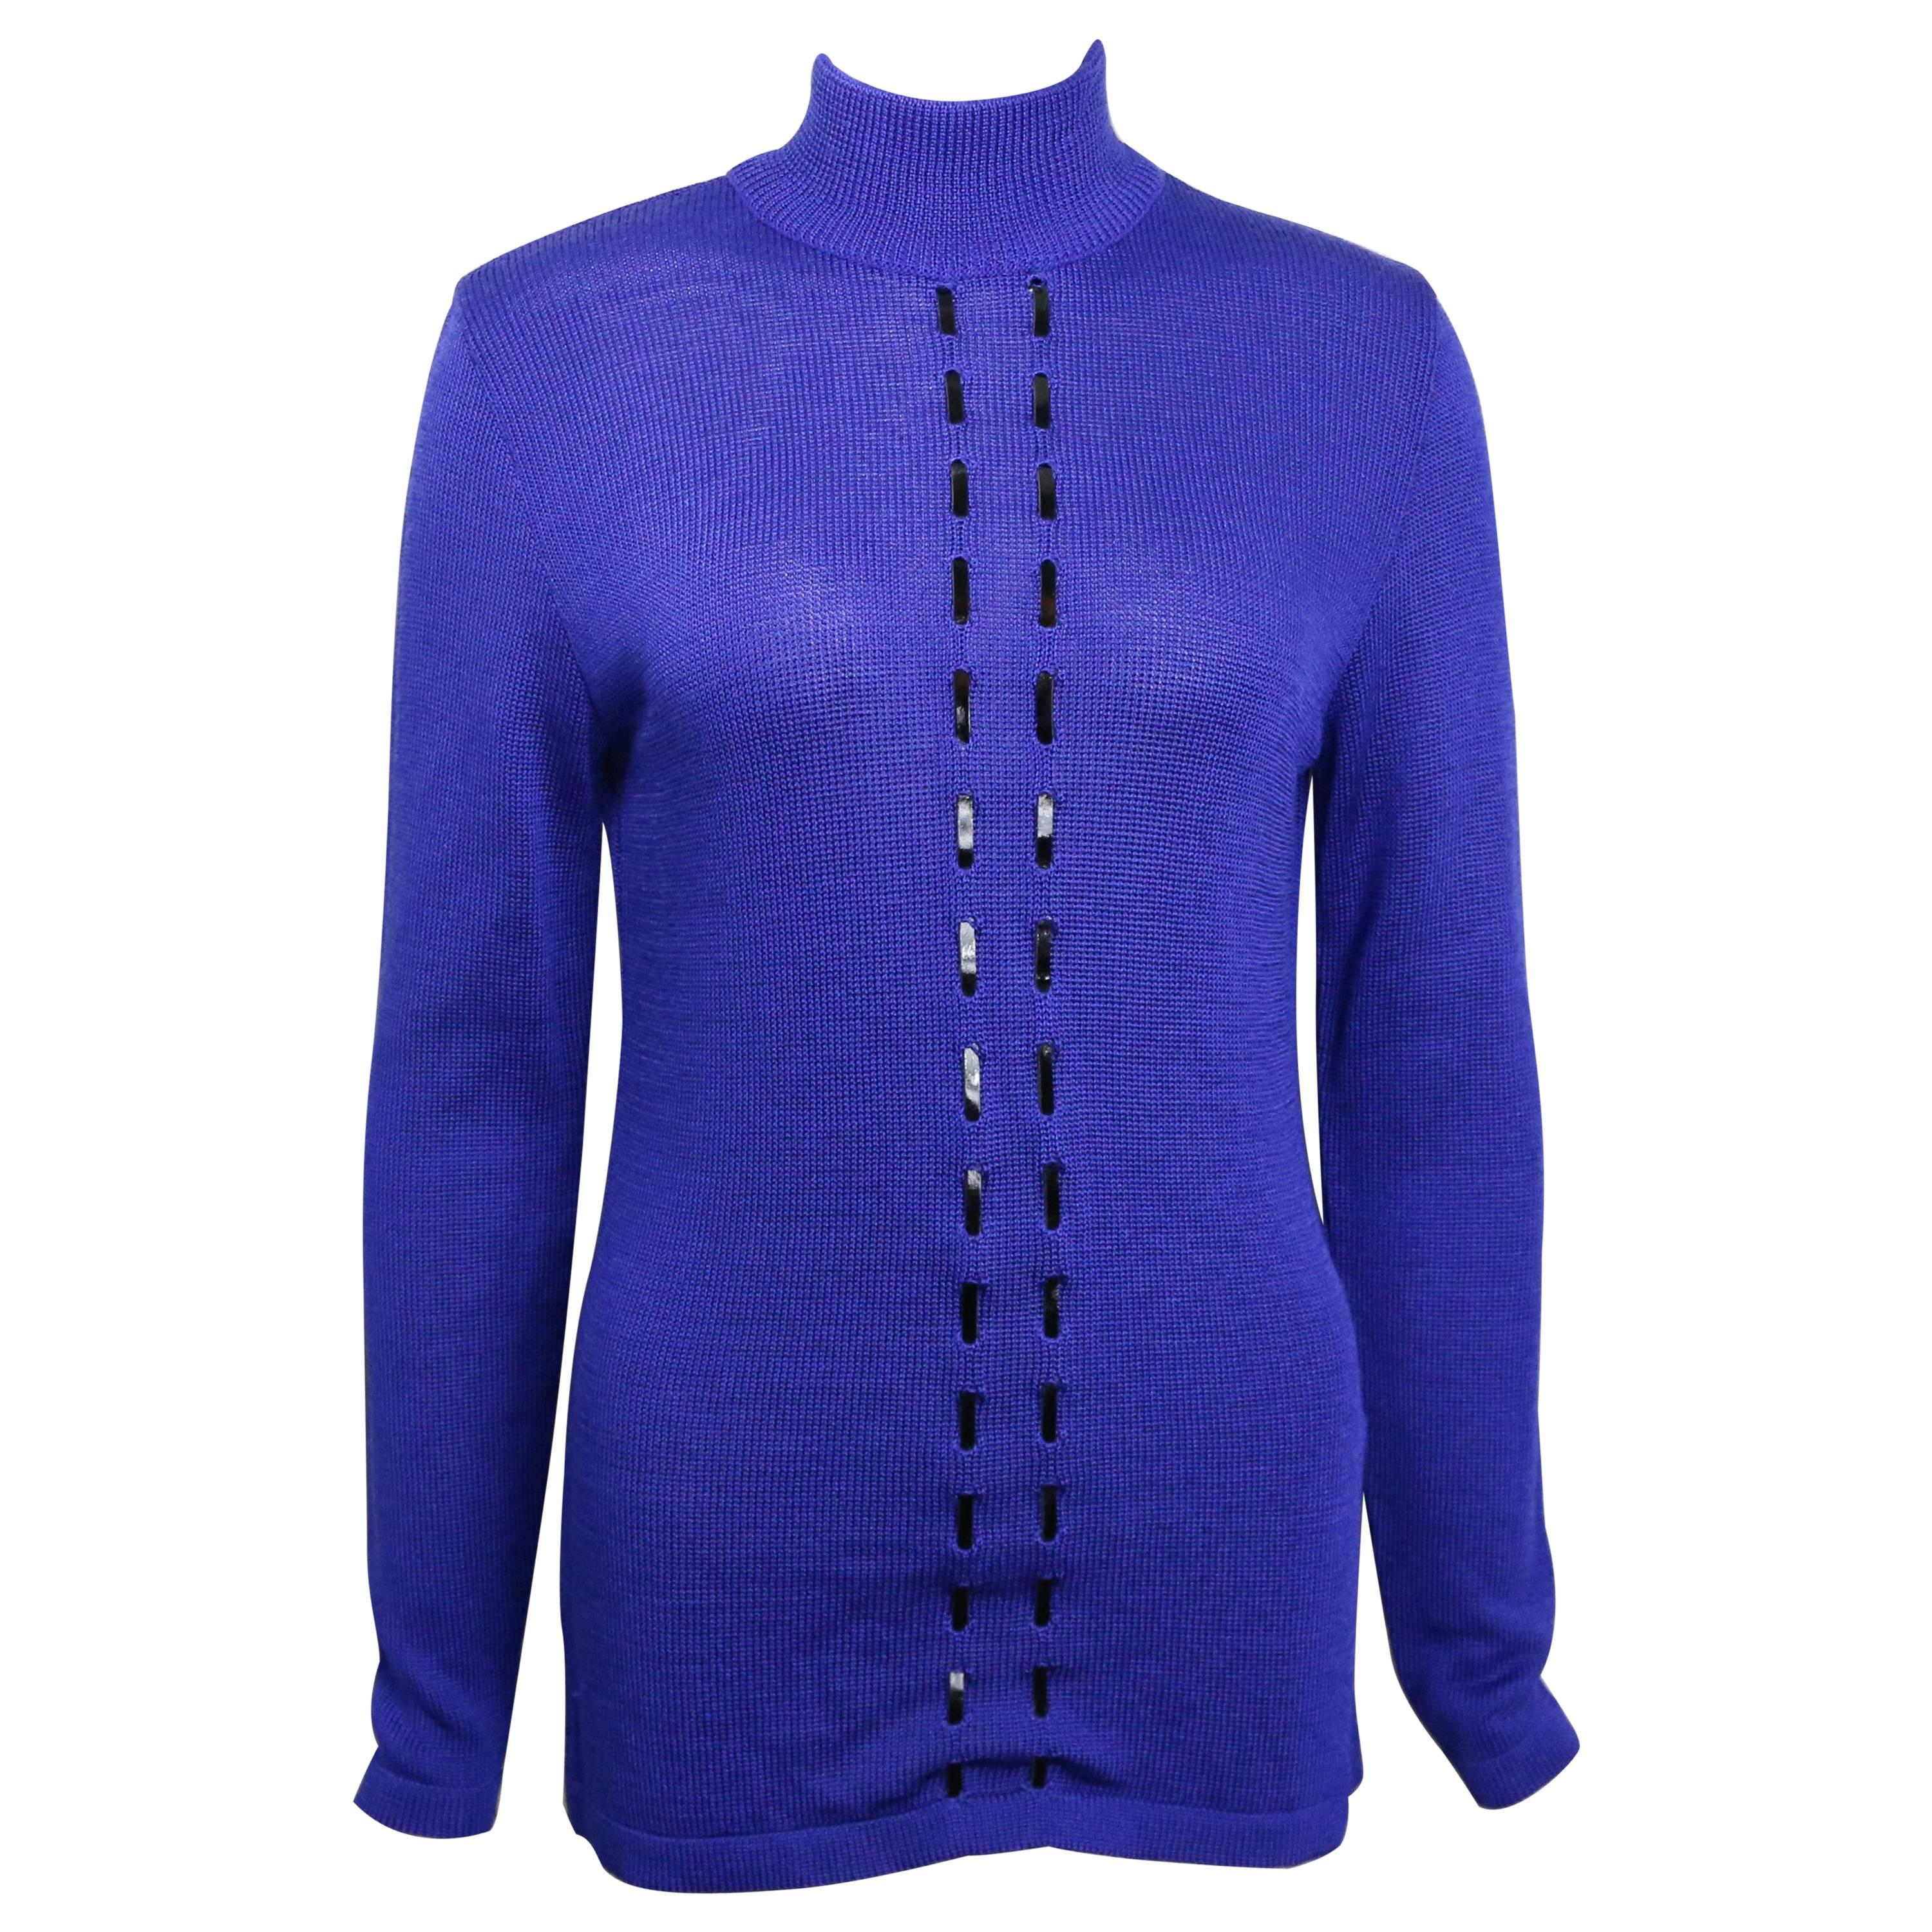 Vintage Claude Montana Blue Wool Patent Leather Trim High Neck Pullover Sweater